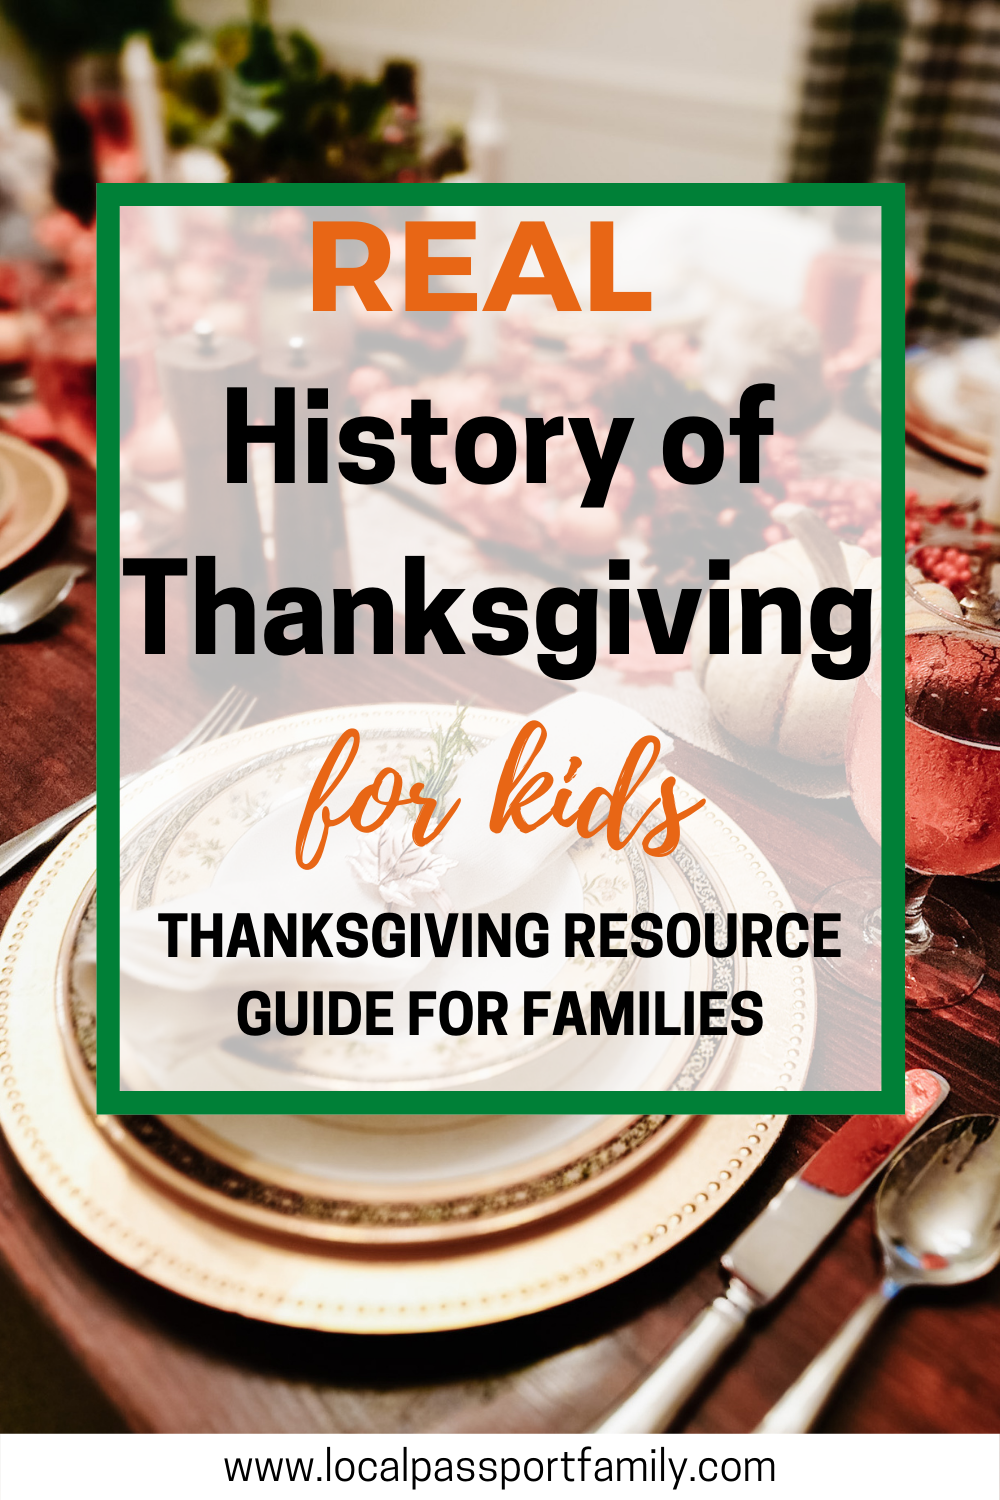 the real history of thanksgiving resource for families